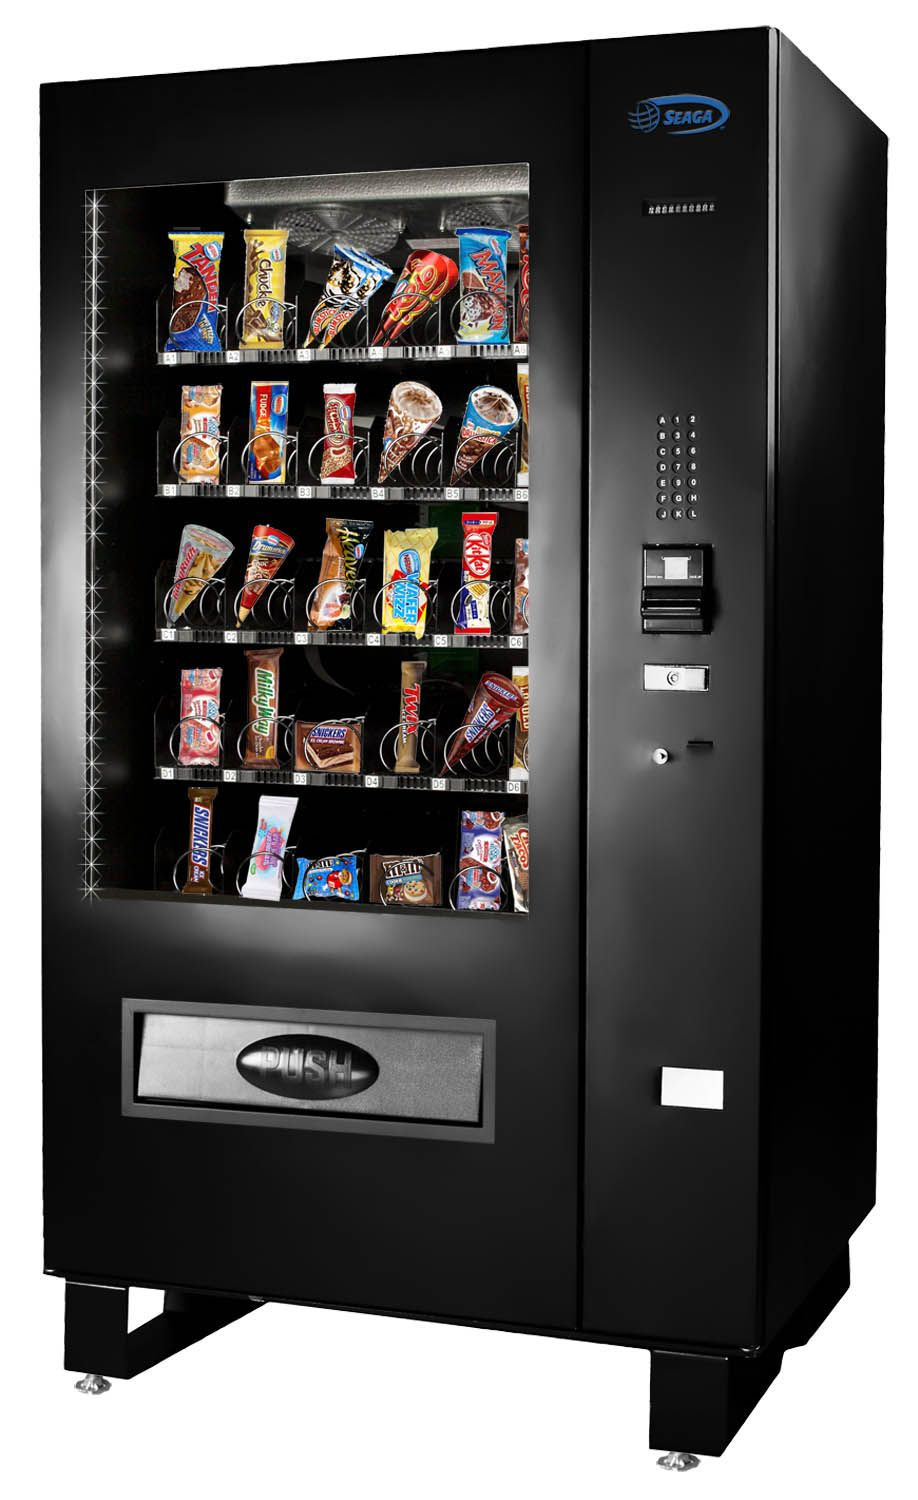 Offering Frozen Food And Ice Cream From A Vending Machine Opens Profit Possibilities In Any Location